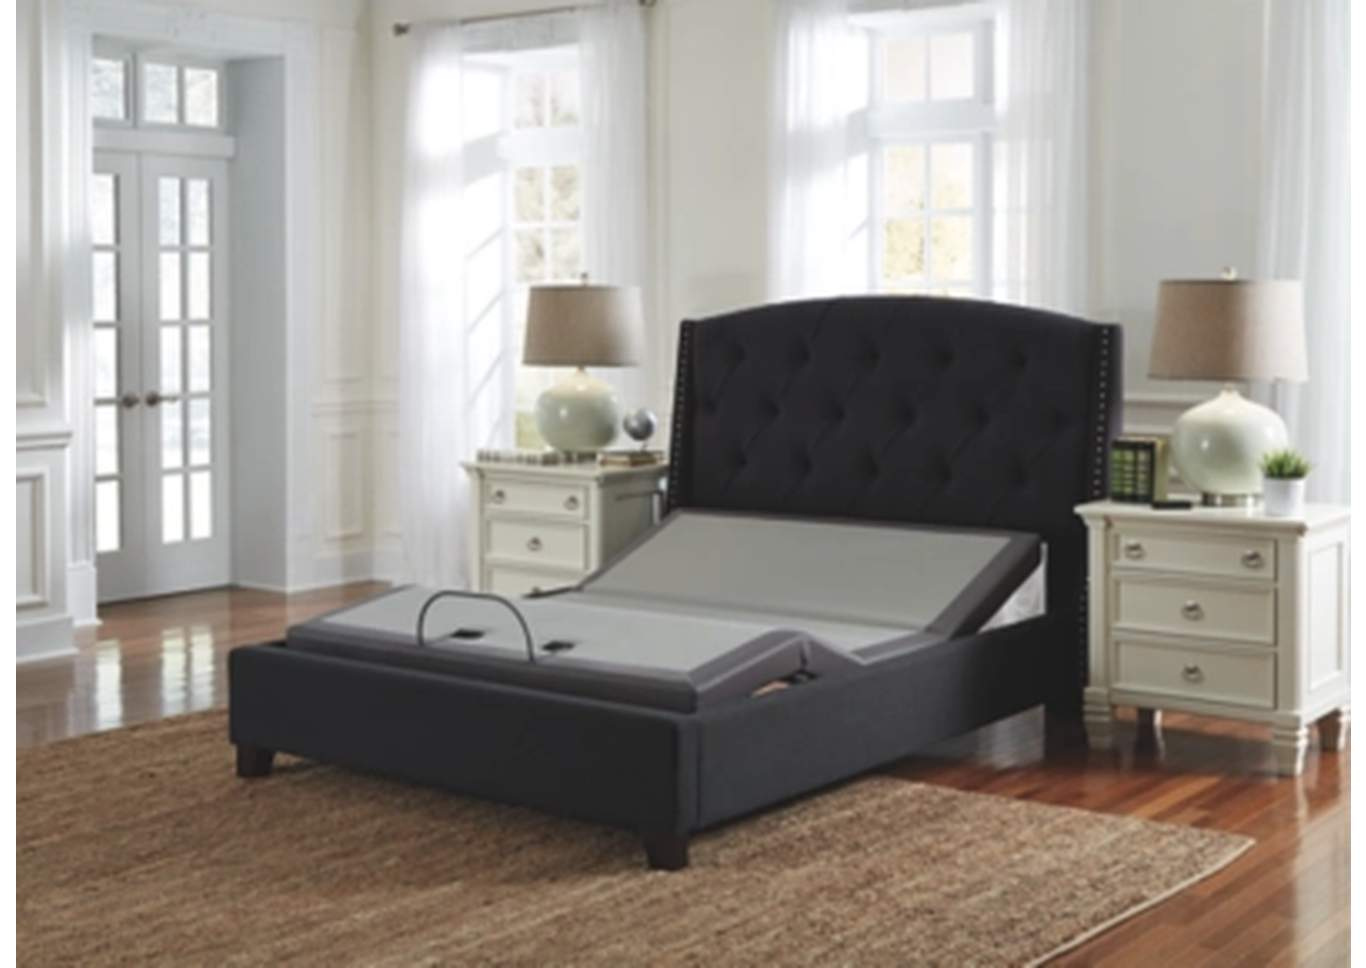 Queen Adjustable Base,Sierra Sleep by Ashley